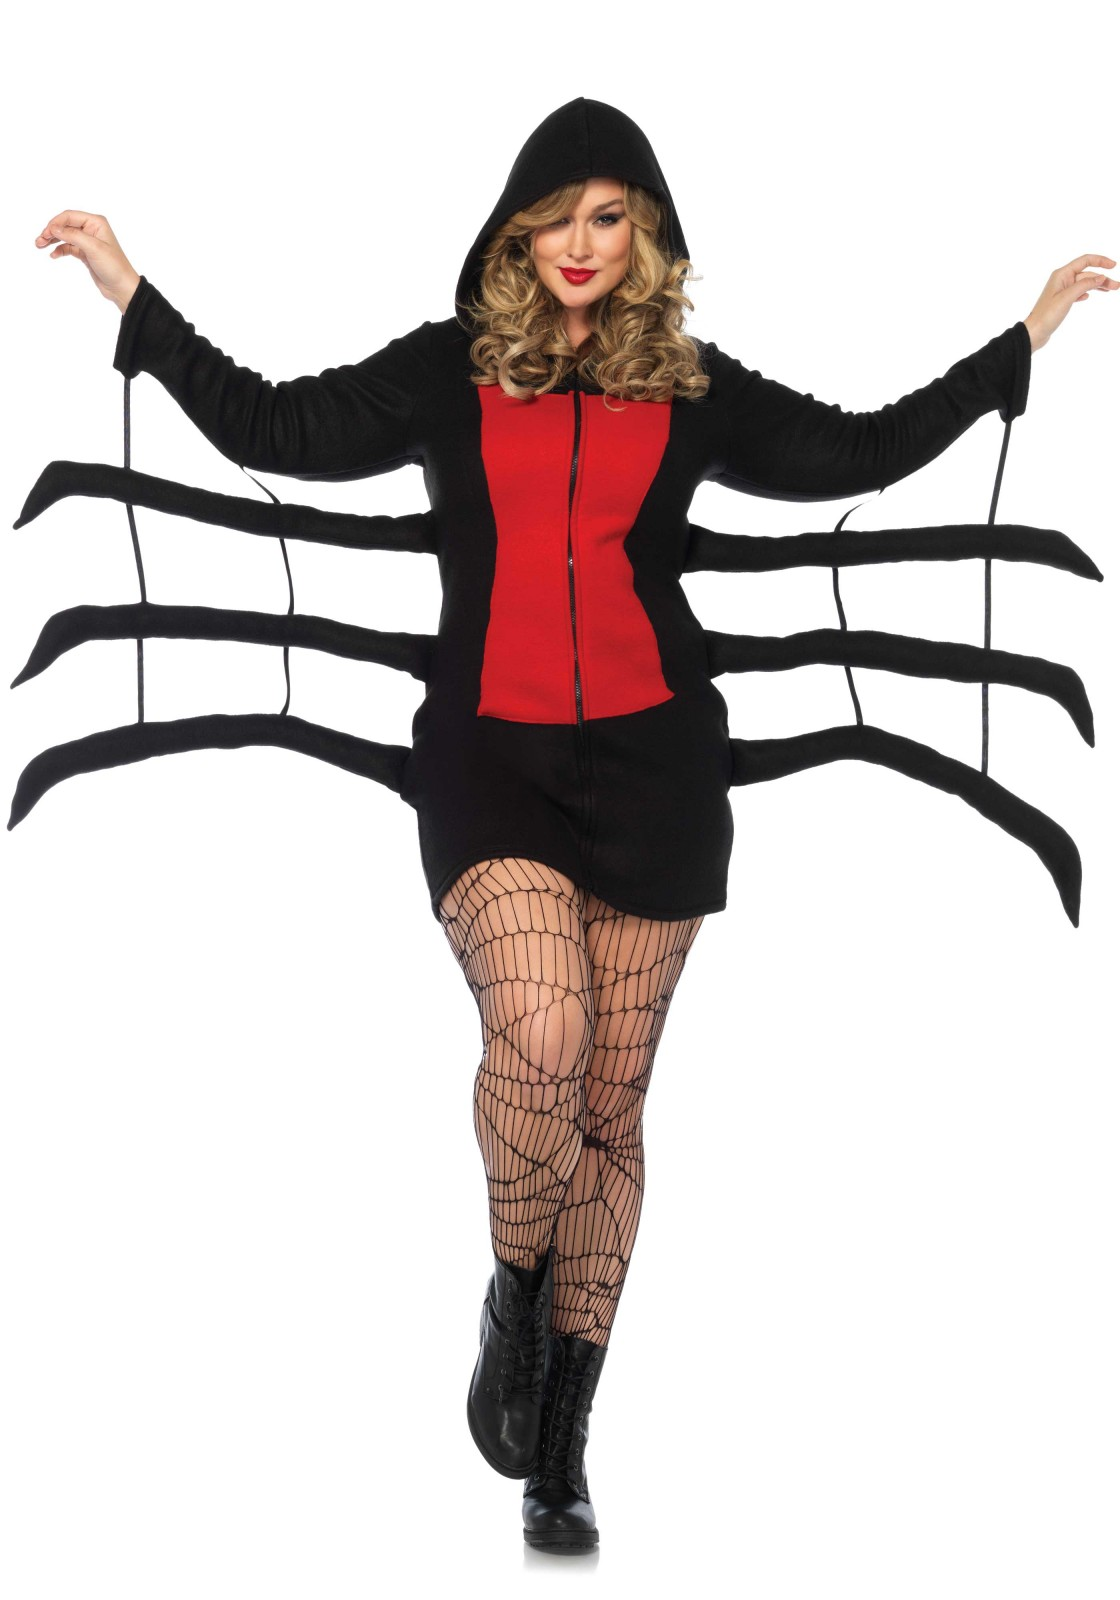 Cozy Spider, features zipper front hooded fleece dress with red danger diamond detail and wiggly spider legs. The length of size Small, measured from the shoulder is 95cm / 37inch. The model has a length of 178 cm/ 70 inch and is wearing a size S.